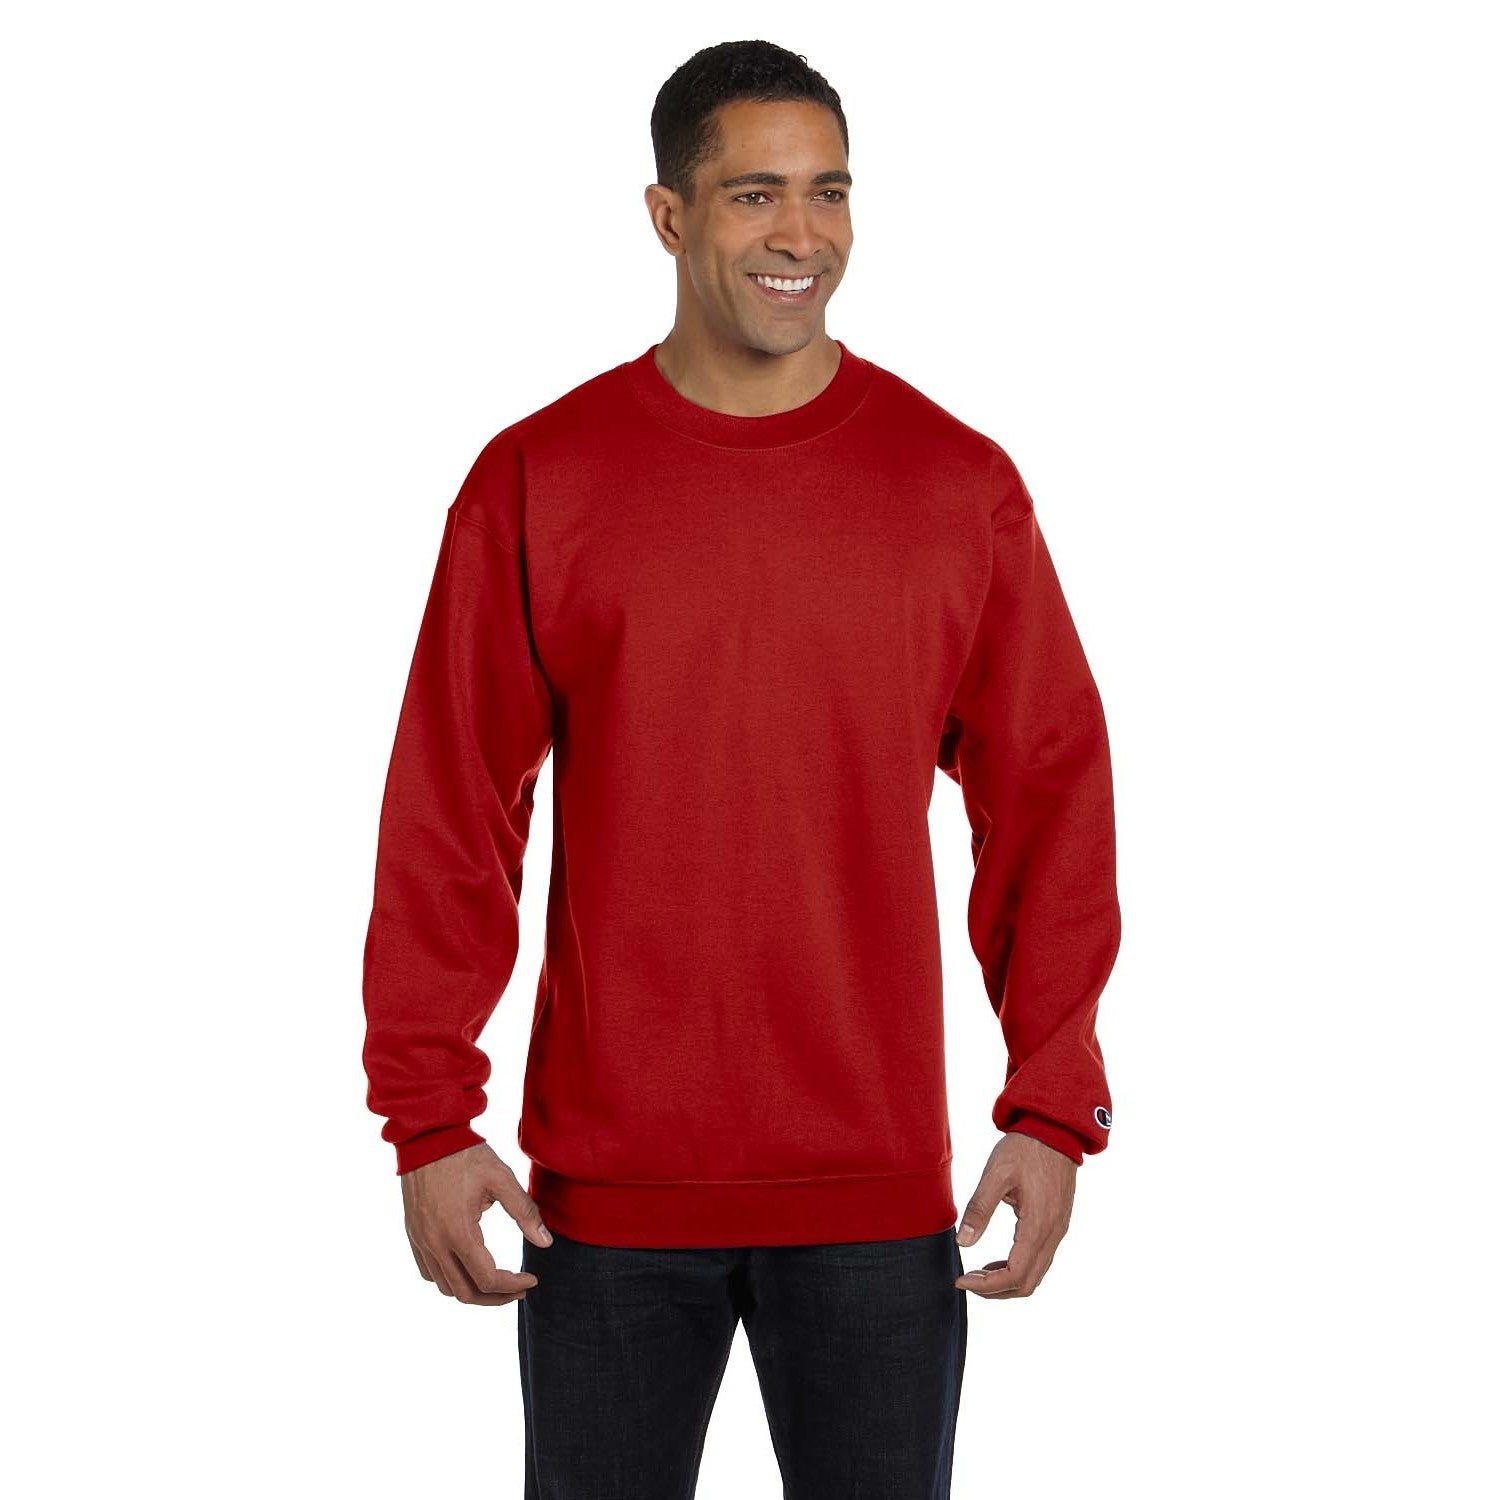 Men's Crew-Neck Scarlet Sweater Red | eBay